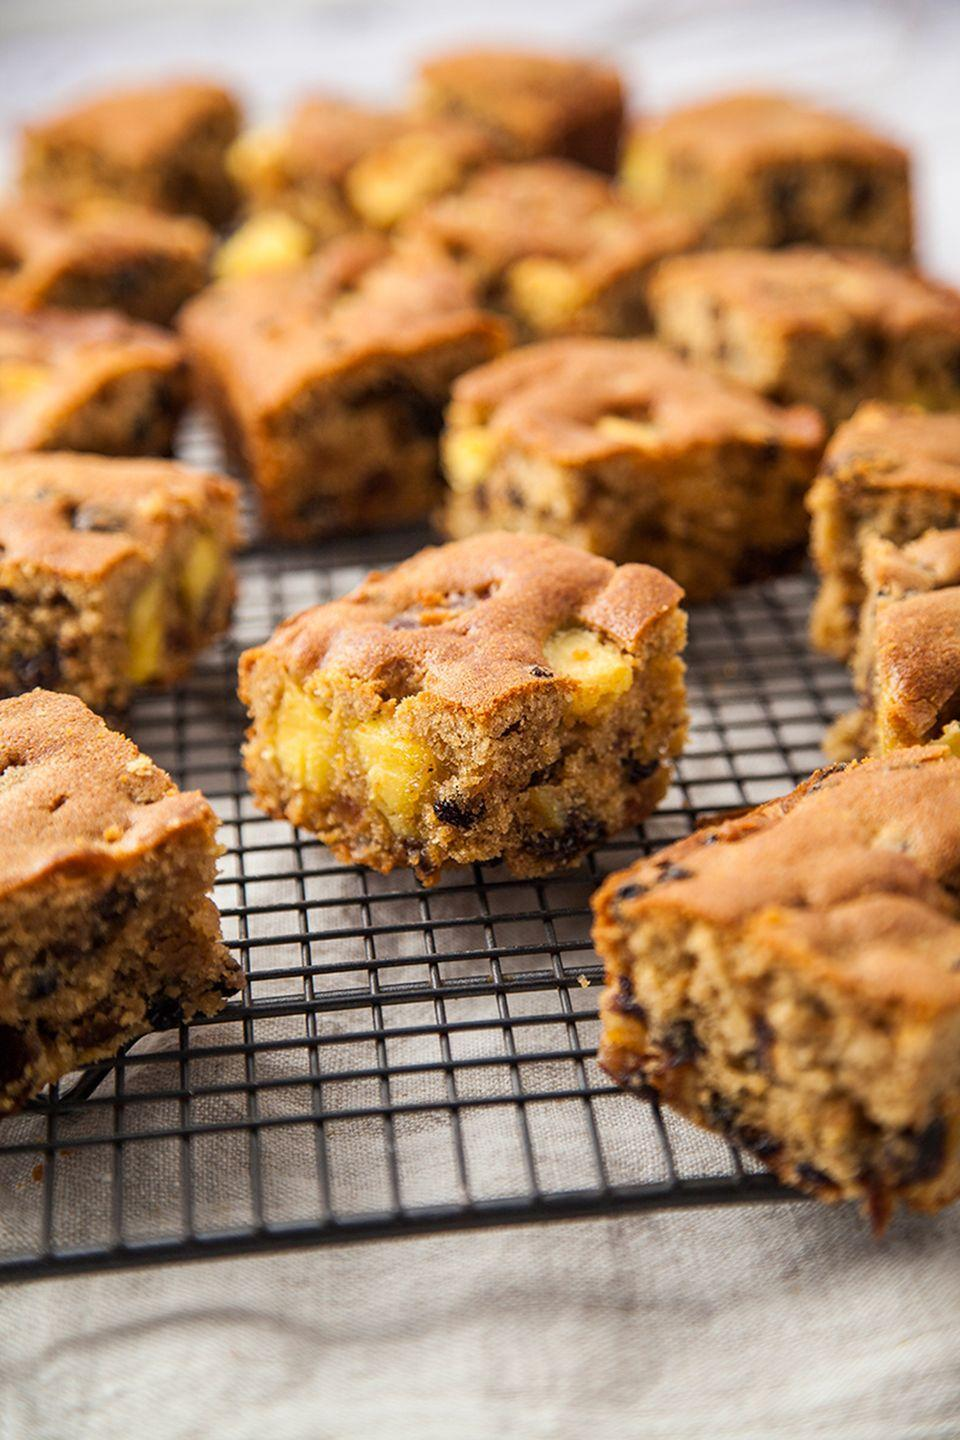 """<p>If you're not in the mood to create a full simnel cake, this easy traybake is ideal.</p><p><strong>Recipe: <a href=""""https://www.goodhousekeeping.com/uk/food/recipes/a26585500/easy-simnel-cake/"""" rel=""""nofollow noopener"""" target=""""_blank"""" data-ylk=""""slk:Simnel traybake"""" class=""""link rapid-noclick-resp"""">Simnel traybake</a></strong></p>"""